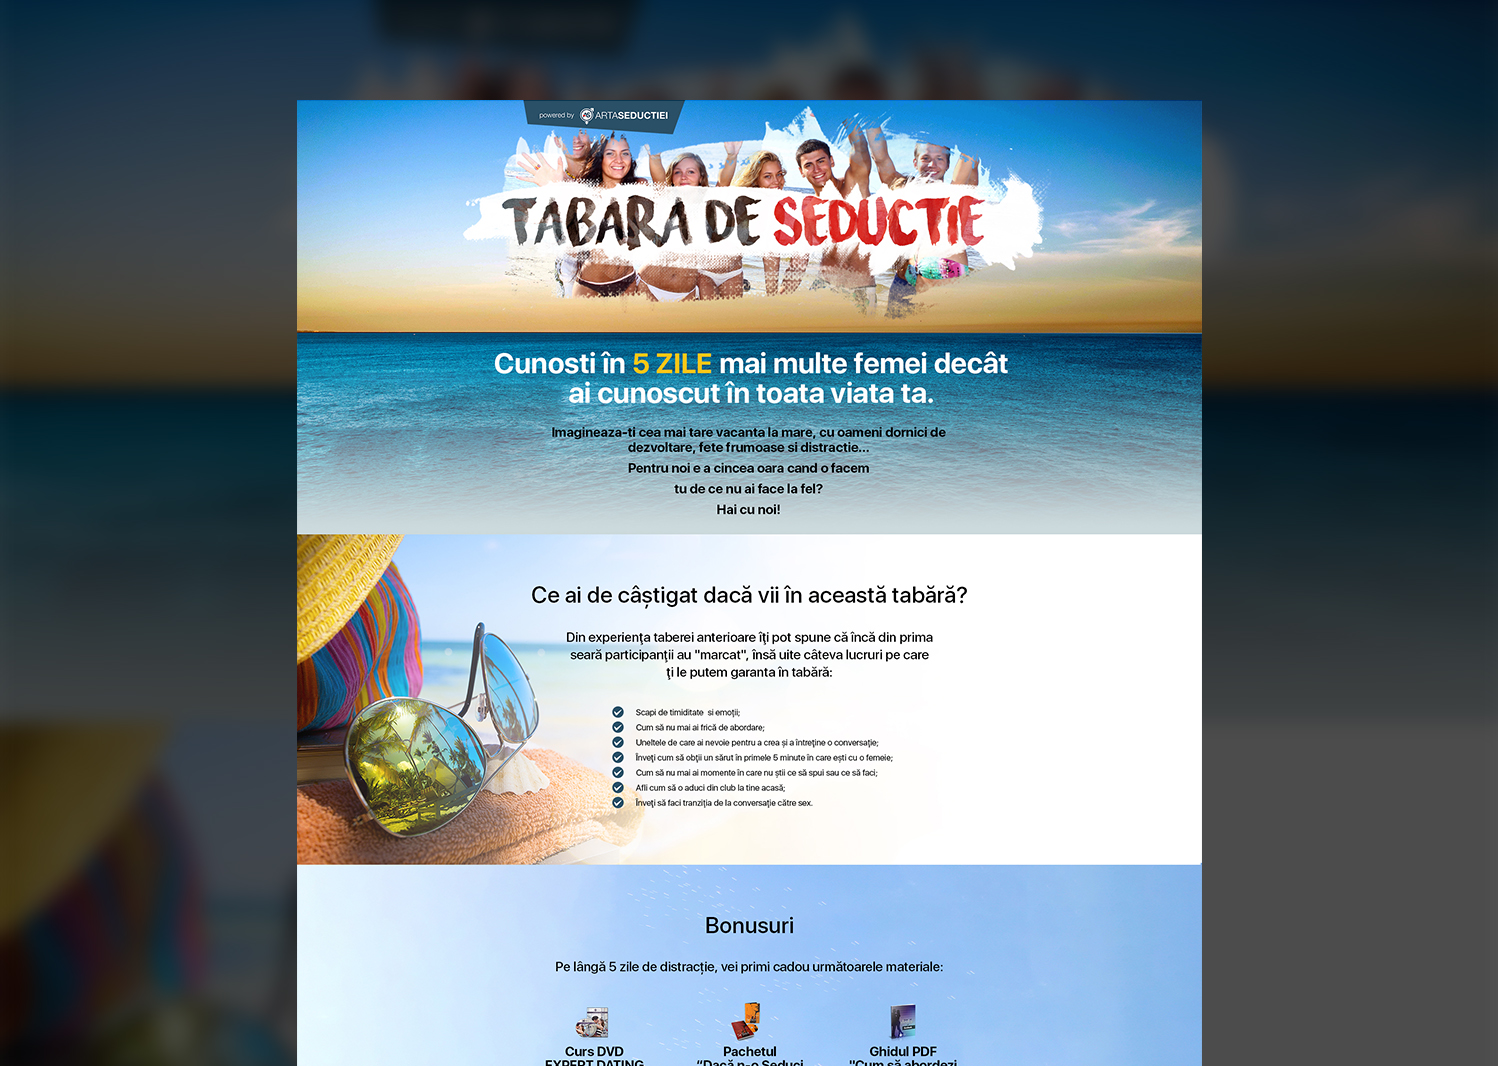 tabara arriba dating site Yagua people are an indigenous people in colombia and northeastern peru , numbering approximately 6,000 currently, they live near the amazon , napo , putumayo and yavari rivers and their tributaries.